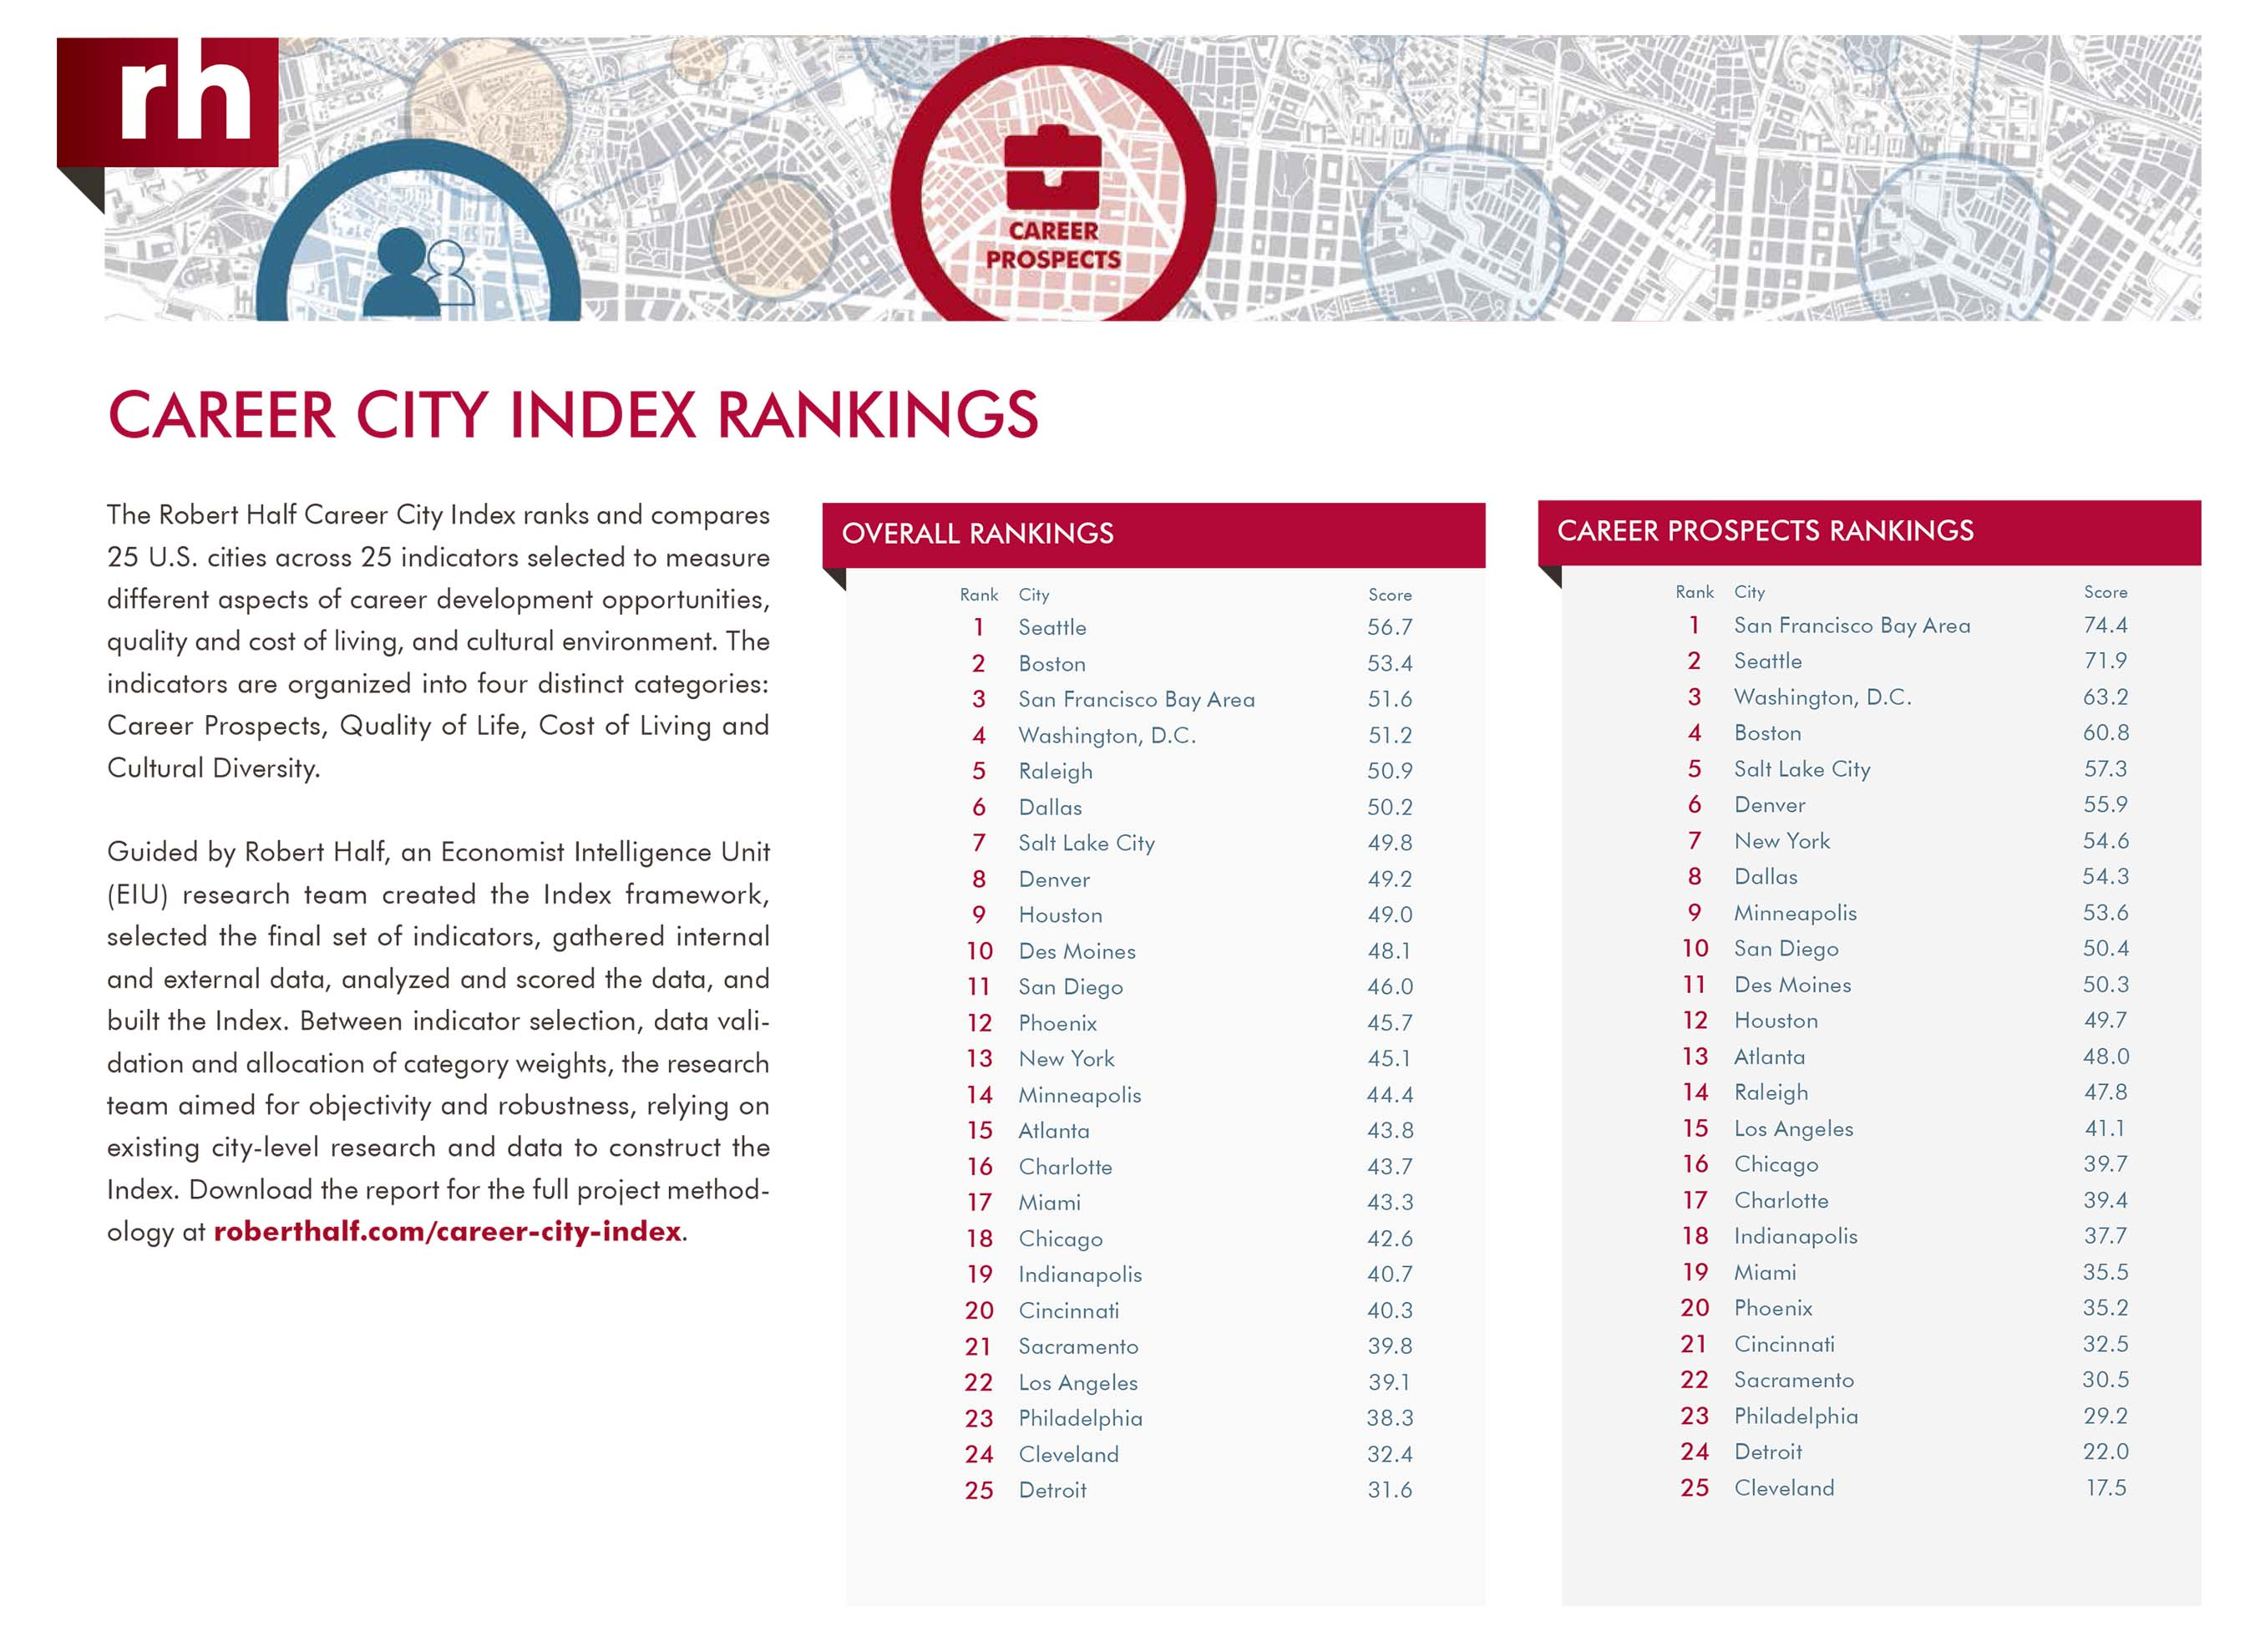 Career City Index Rankings